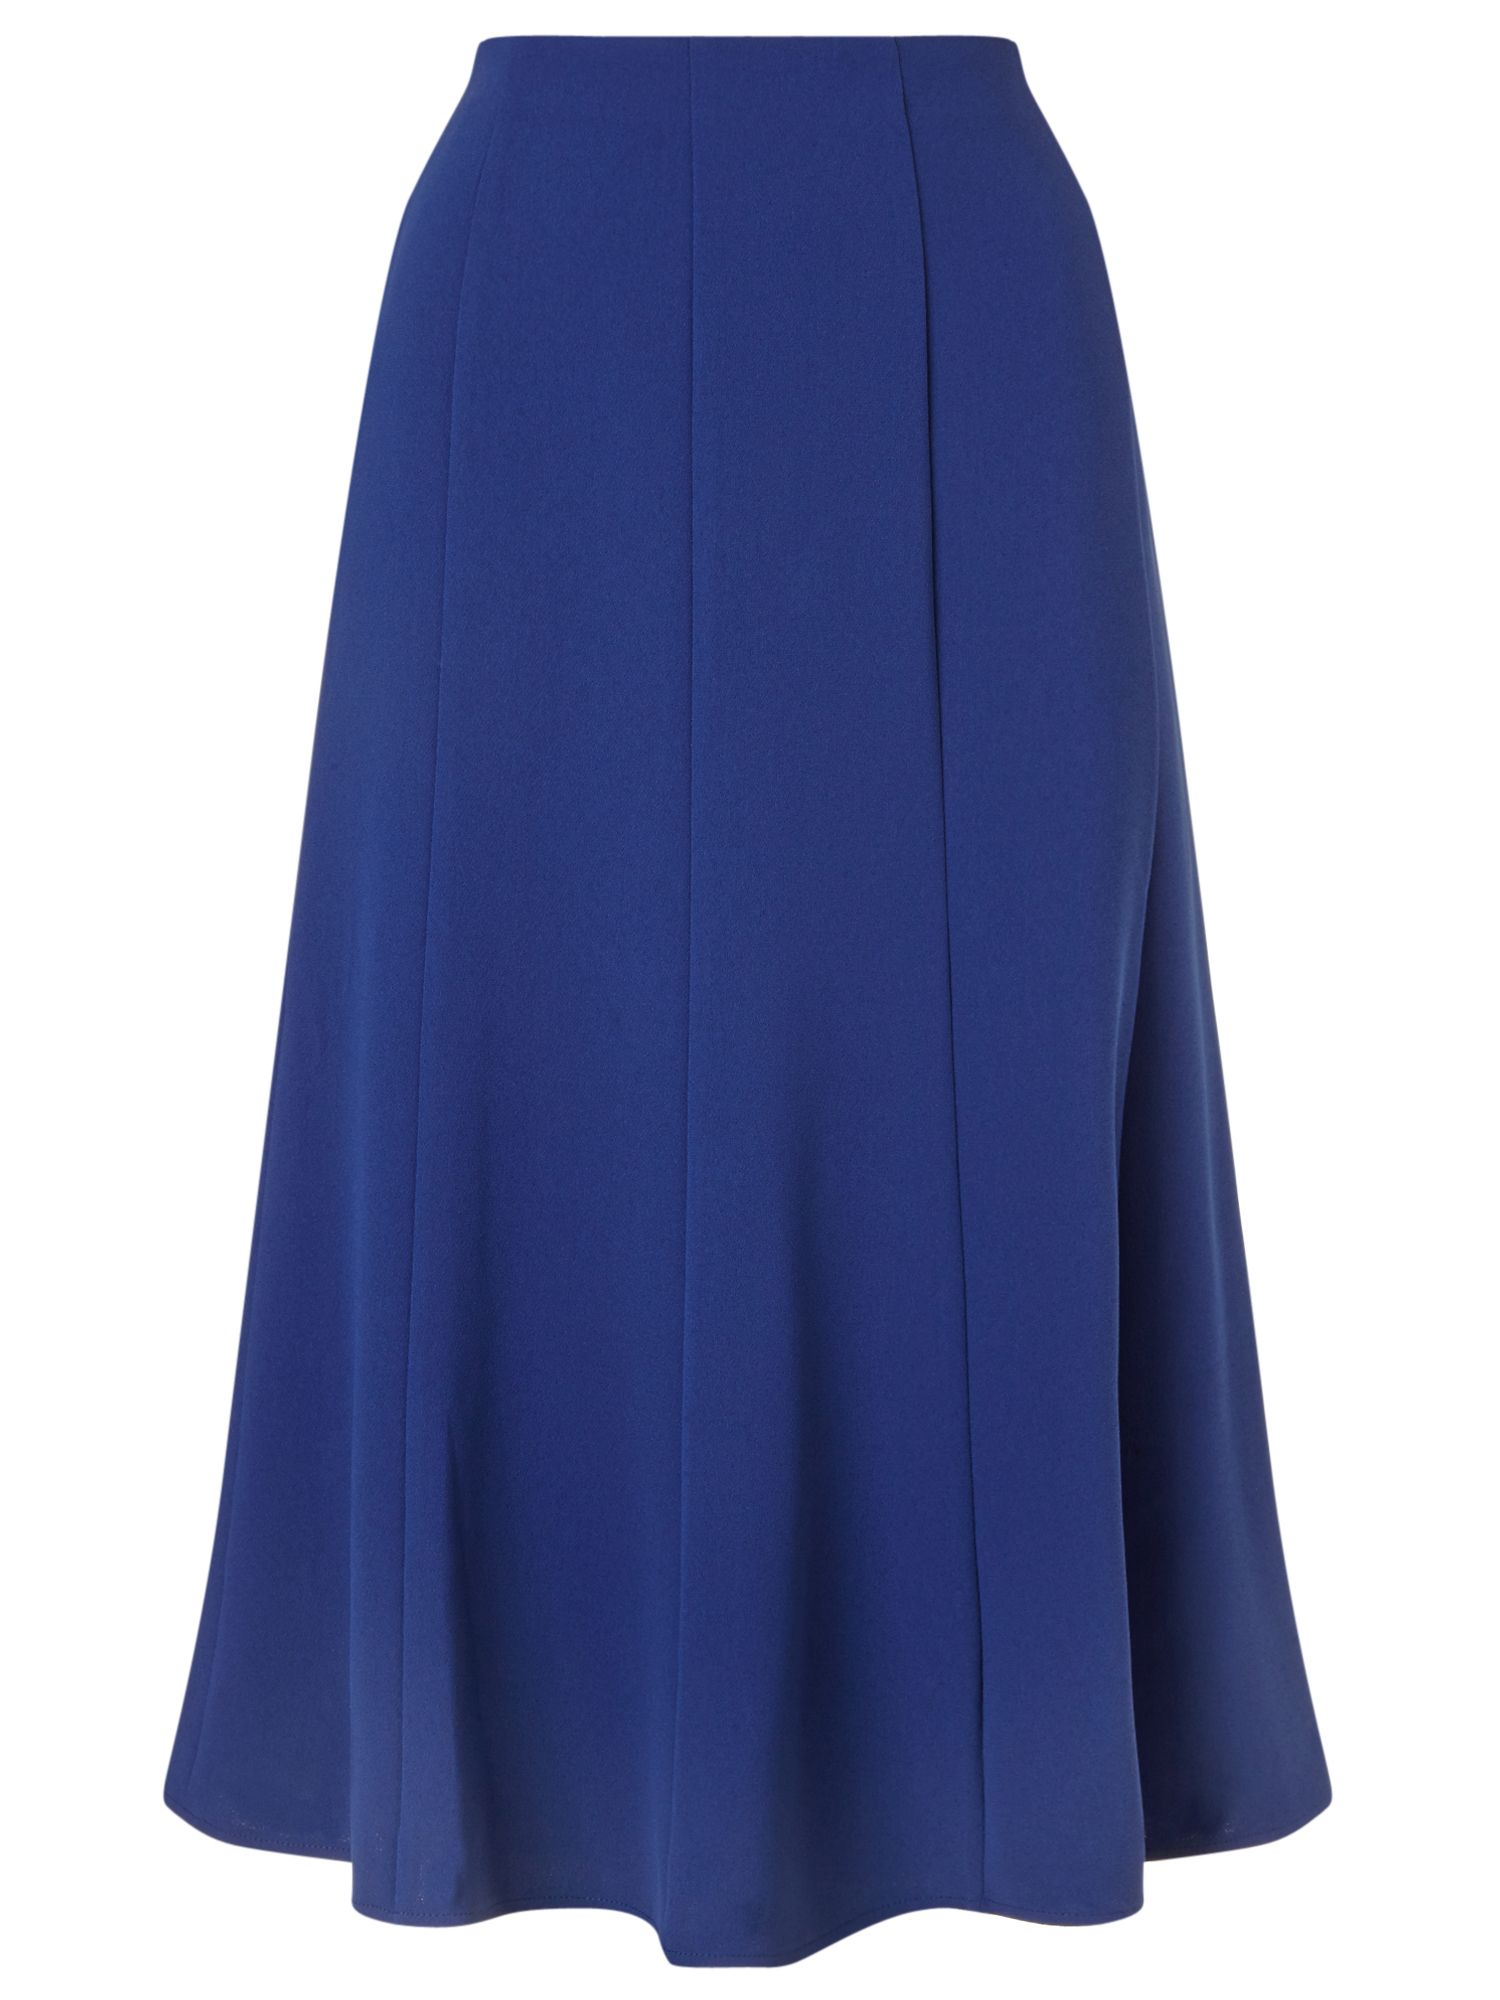 Eastex Crepe Fit And Flare Skirt, Navy